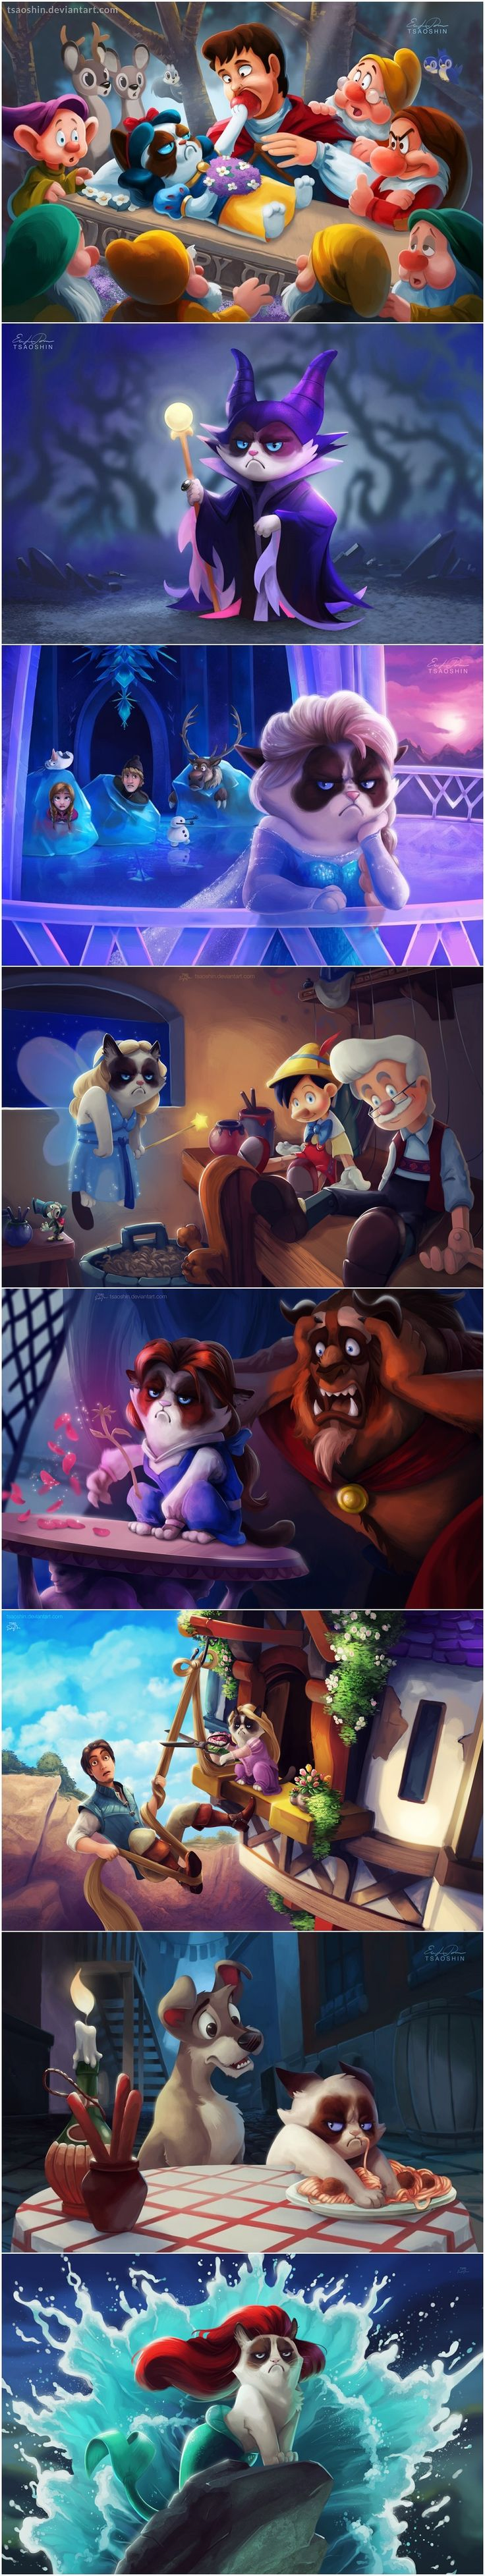 Grumpy Disney § Find more artworks: www.pinterest.com/aalishev